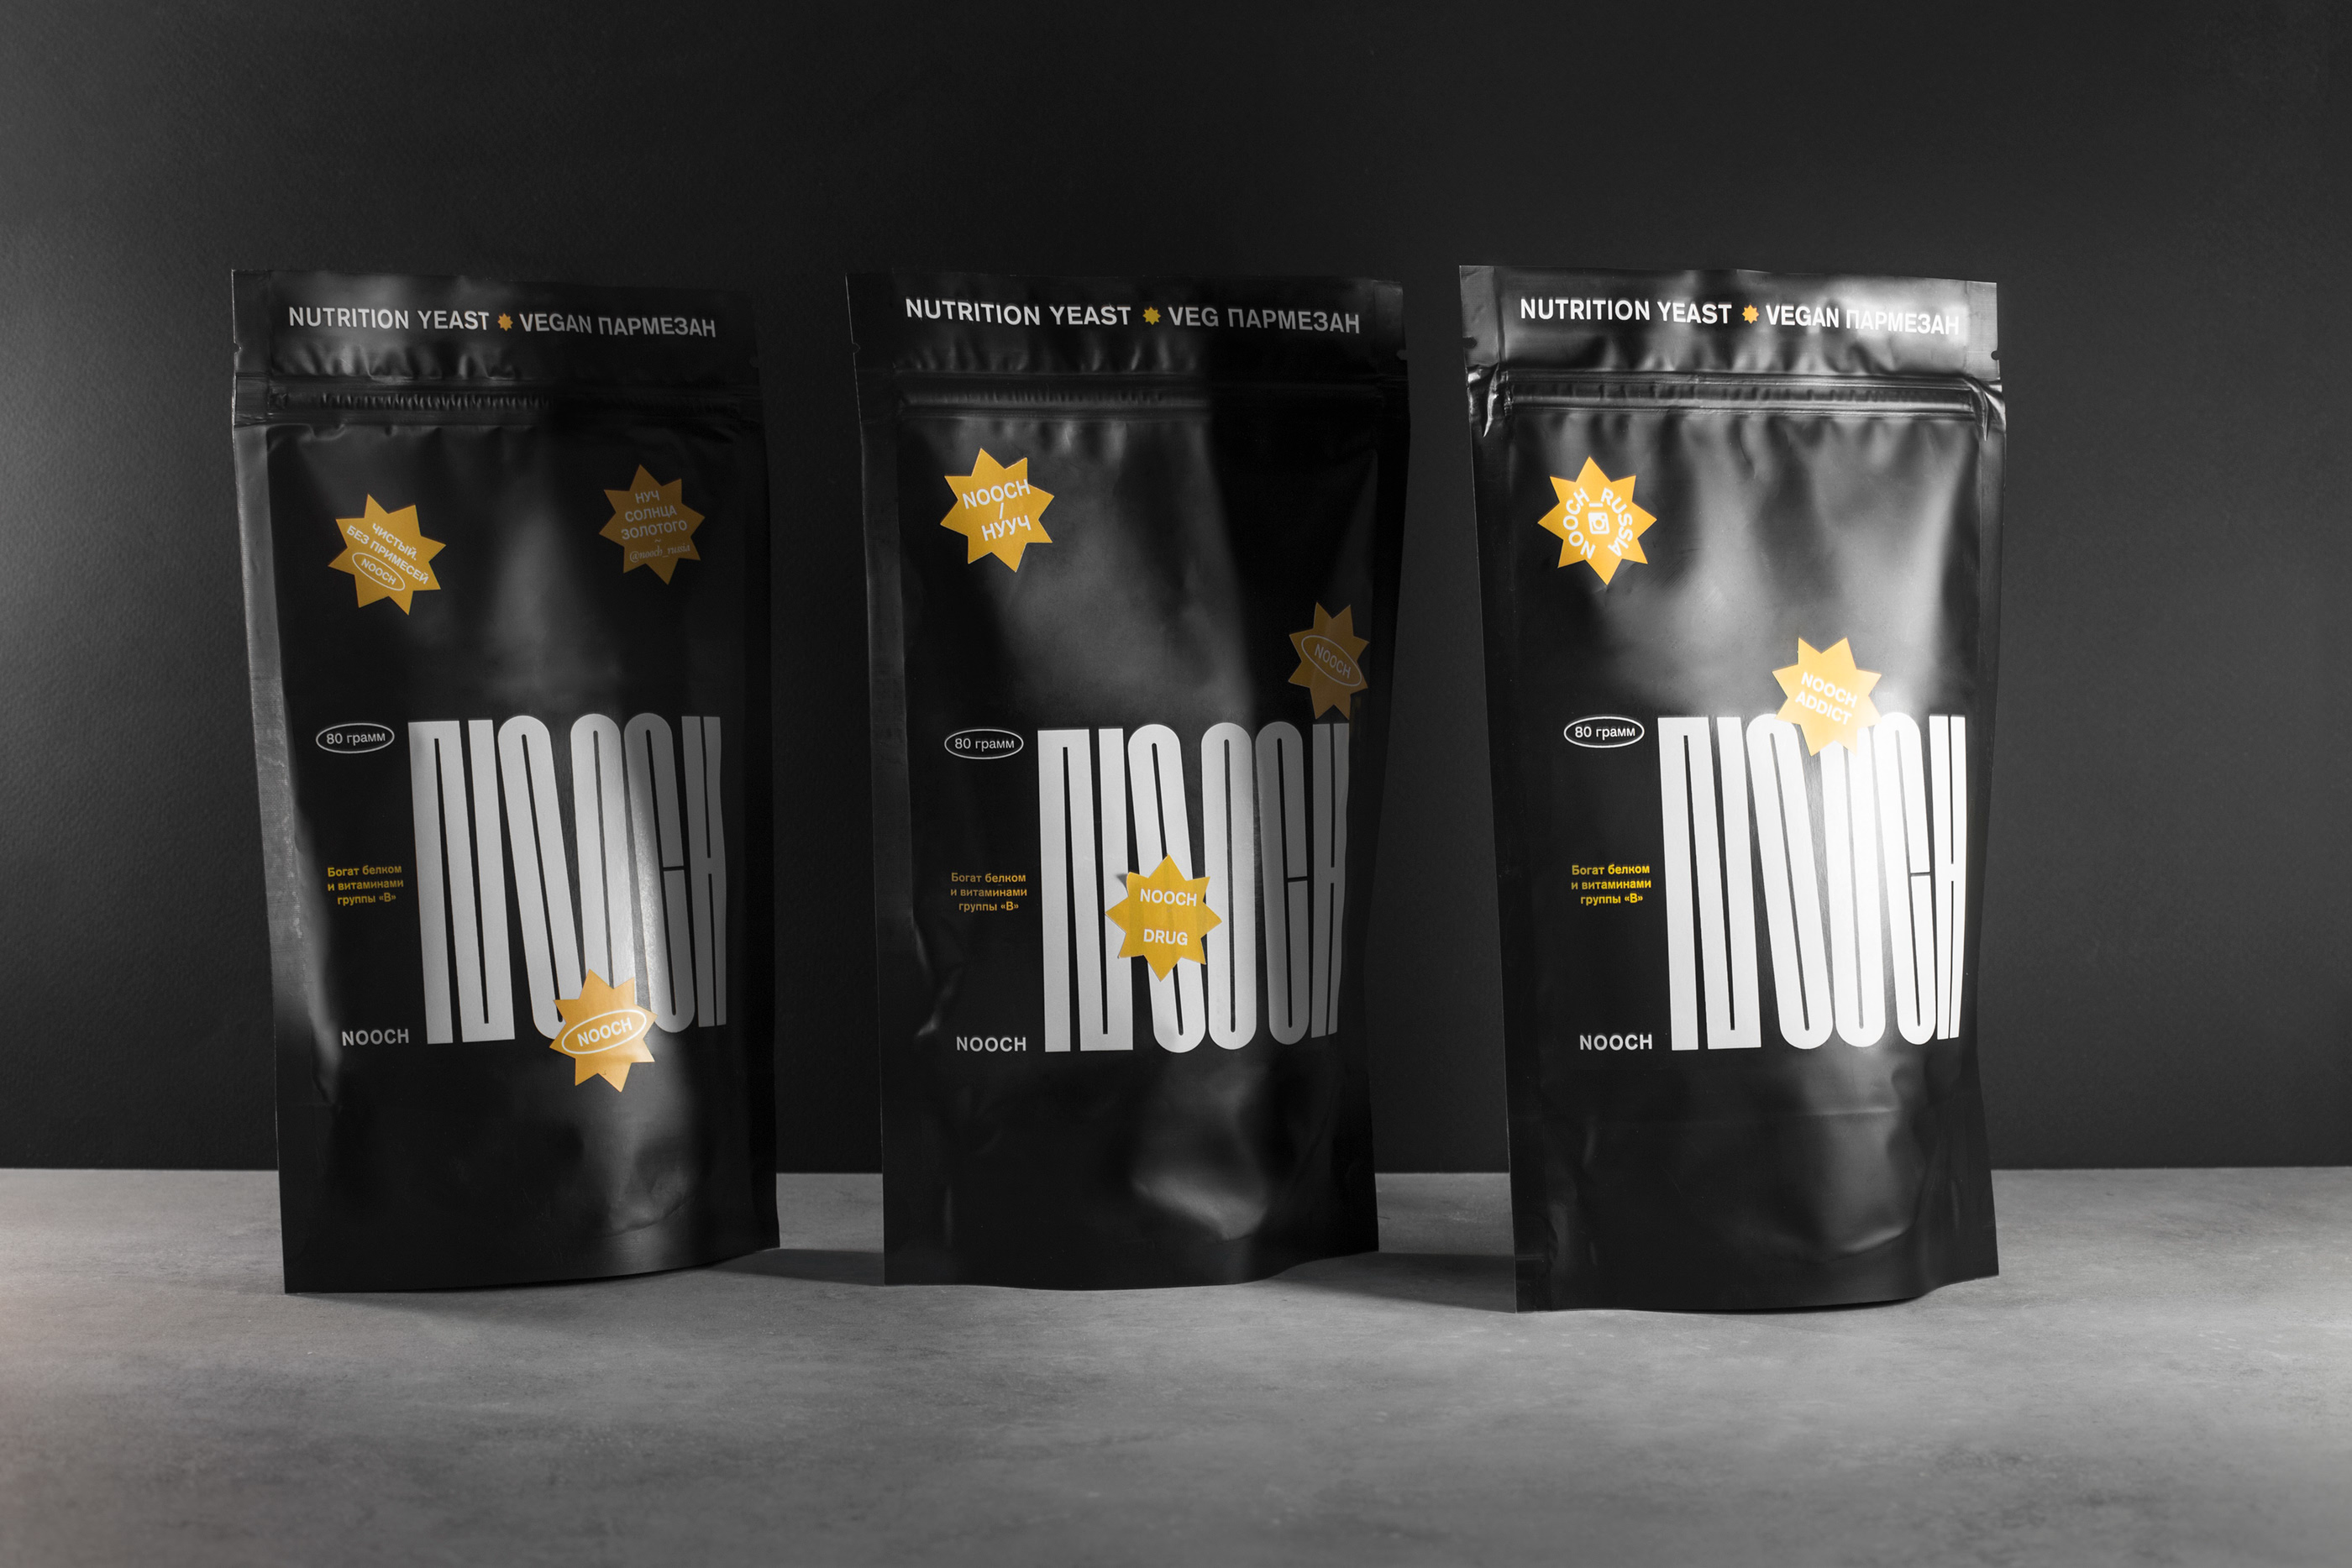 Design Agency G. Bruno Create New Package for Nutritional Yeast